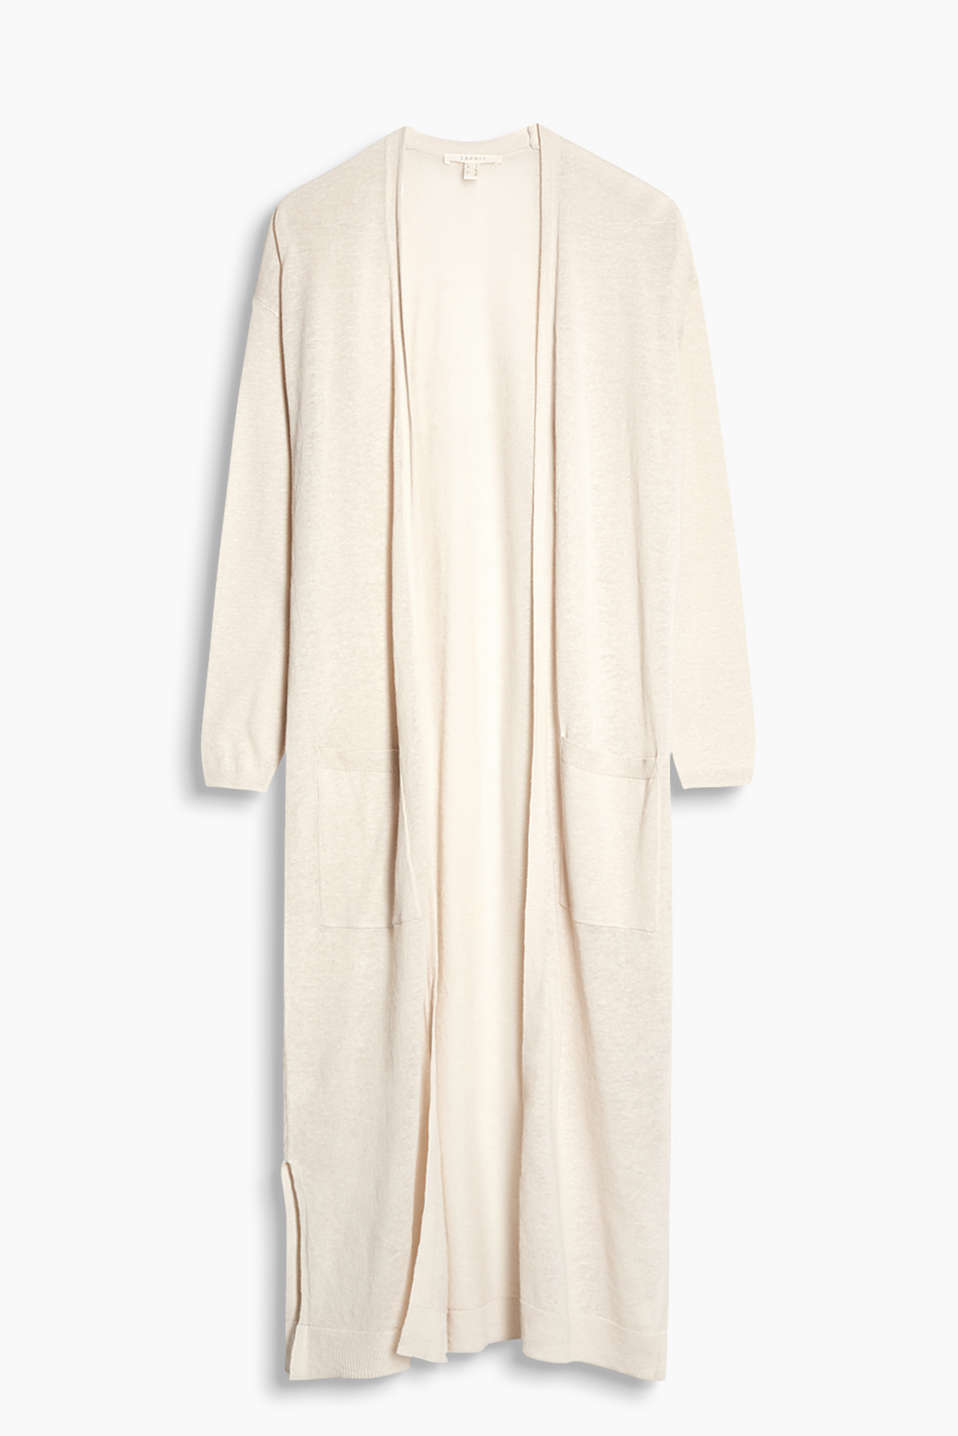 This long cardigan in extremely comfortable blended fabric is airy, lightweight and open-fronted